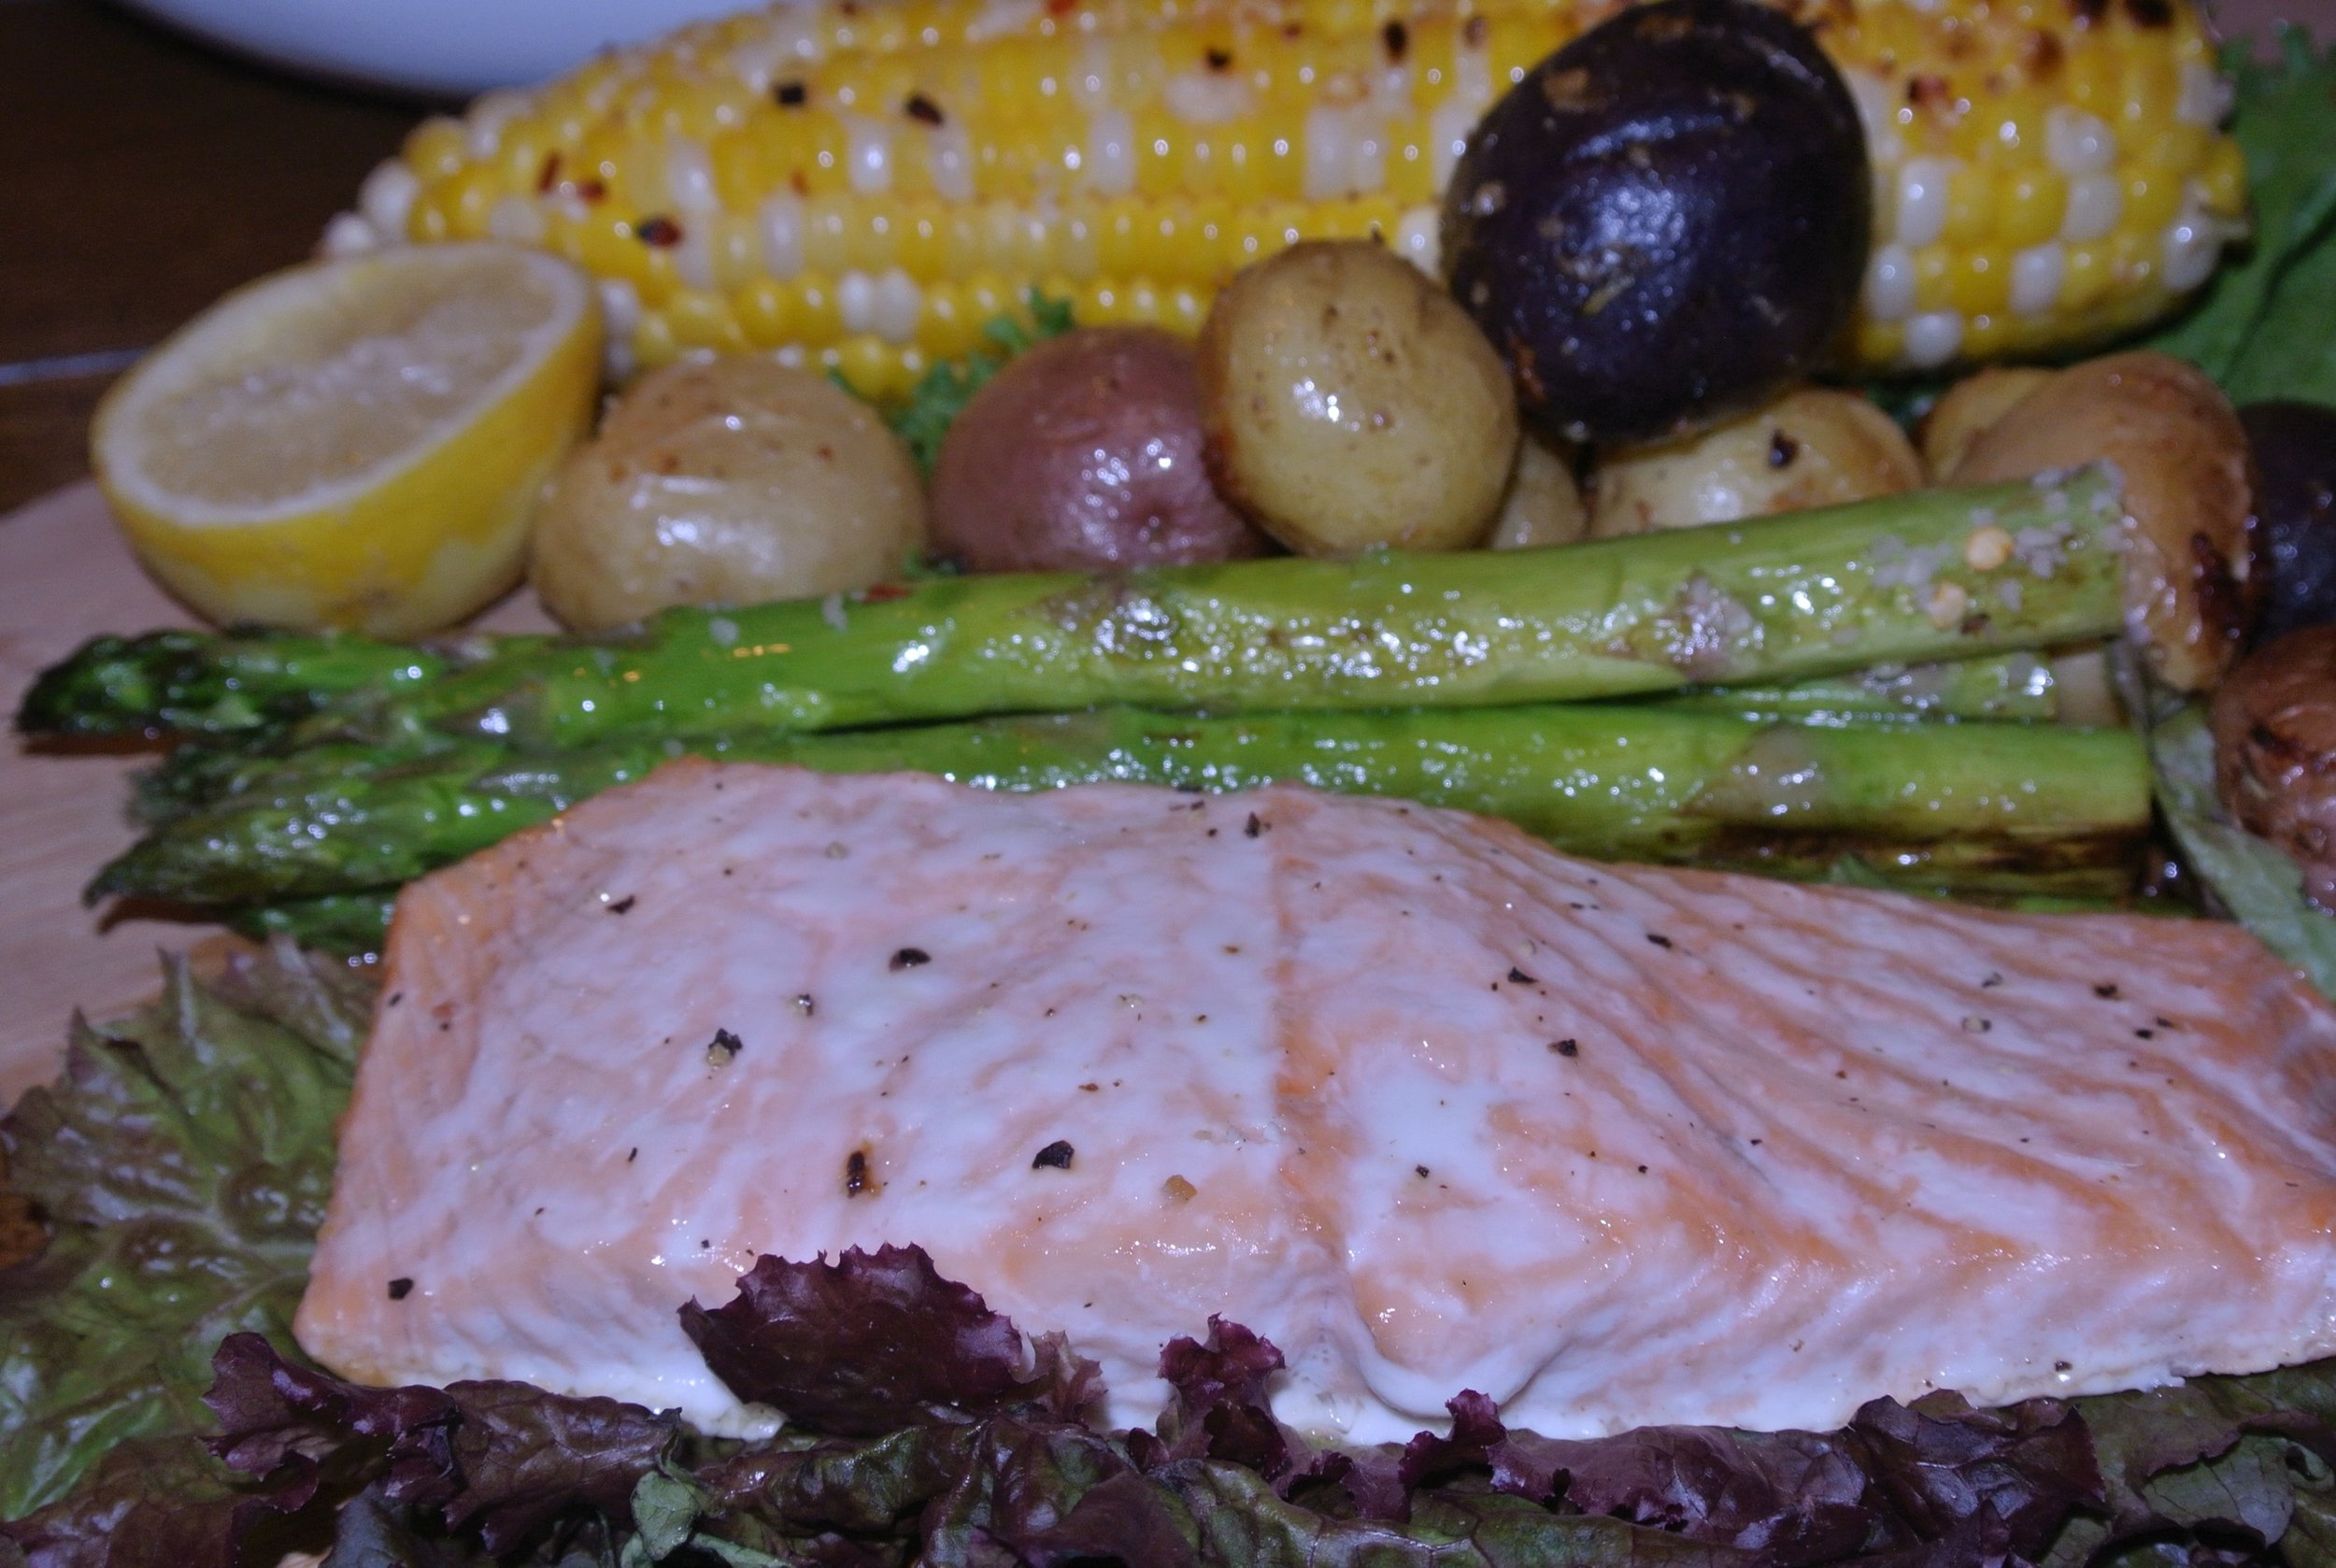 Lemon Drizzled Salmon